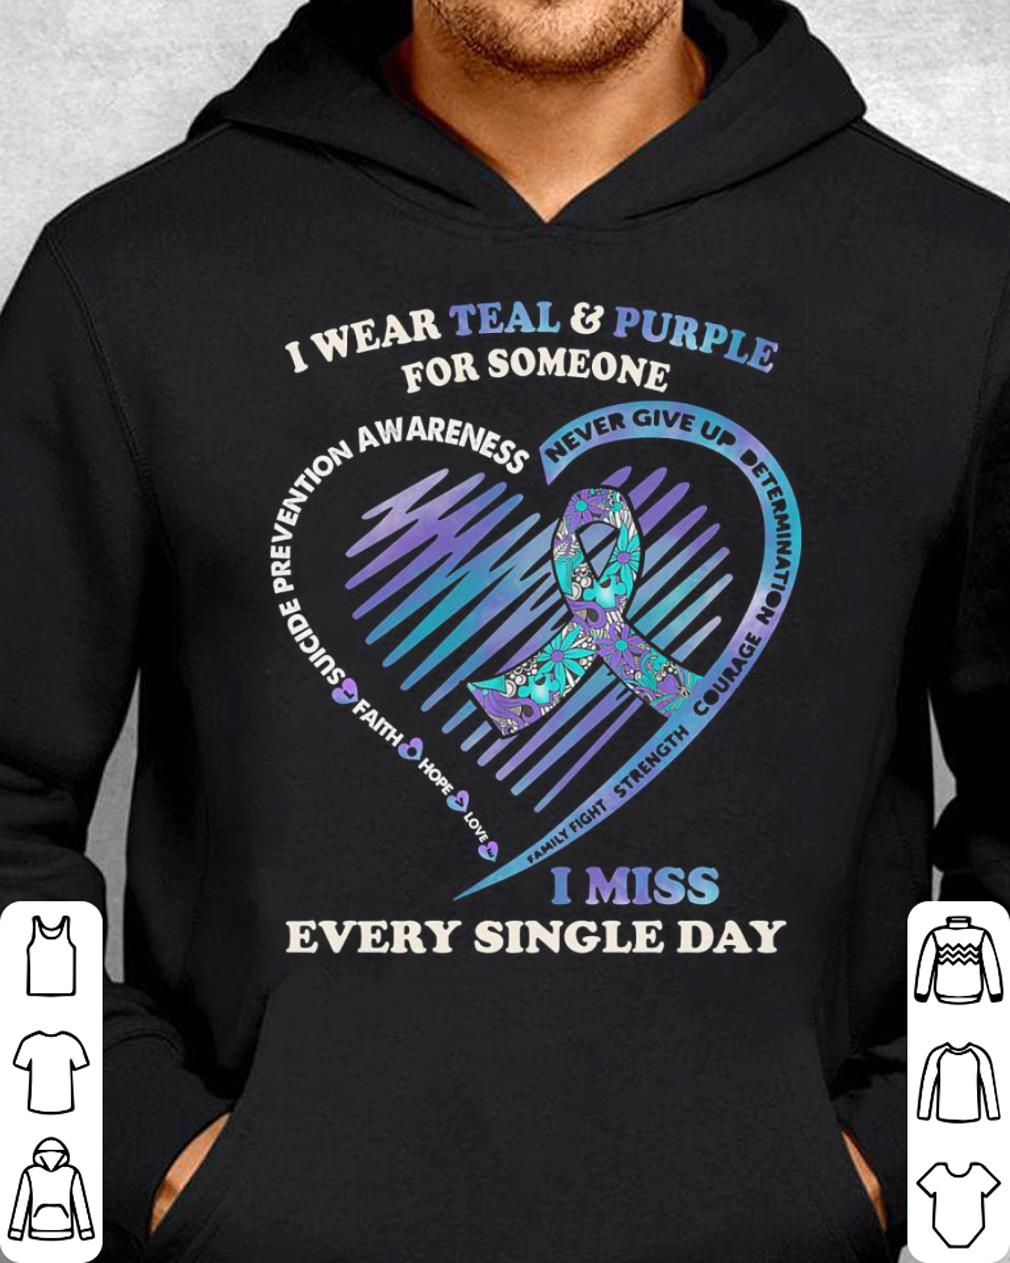 https://officialshirts.net/tee/2019/02/Breast-cancer-I-wear-teal-purple-for-someone-i-miss-every-single-day-shirt_4.jpg